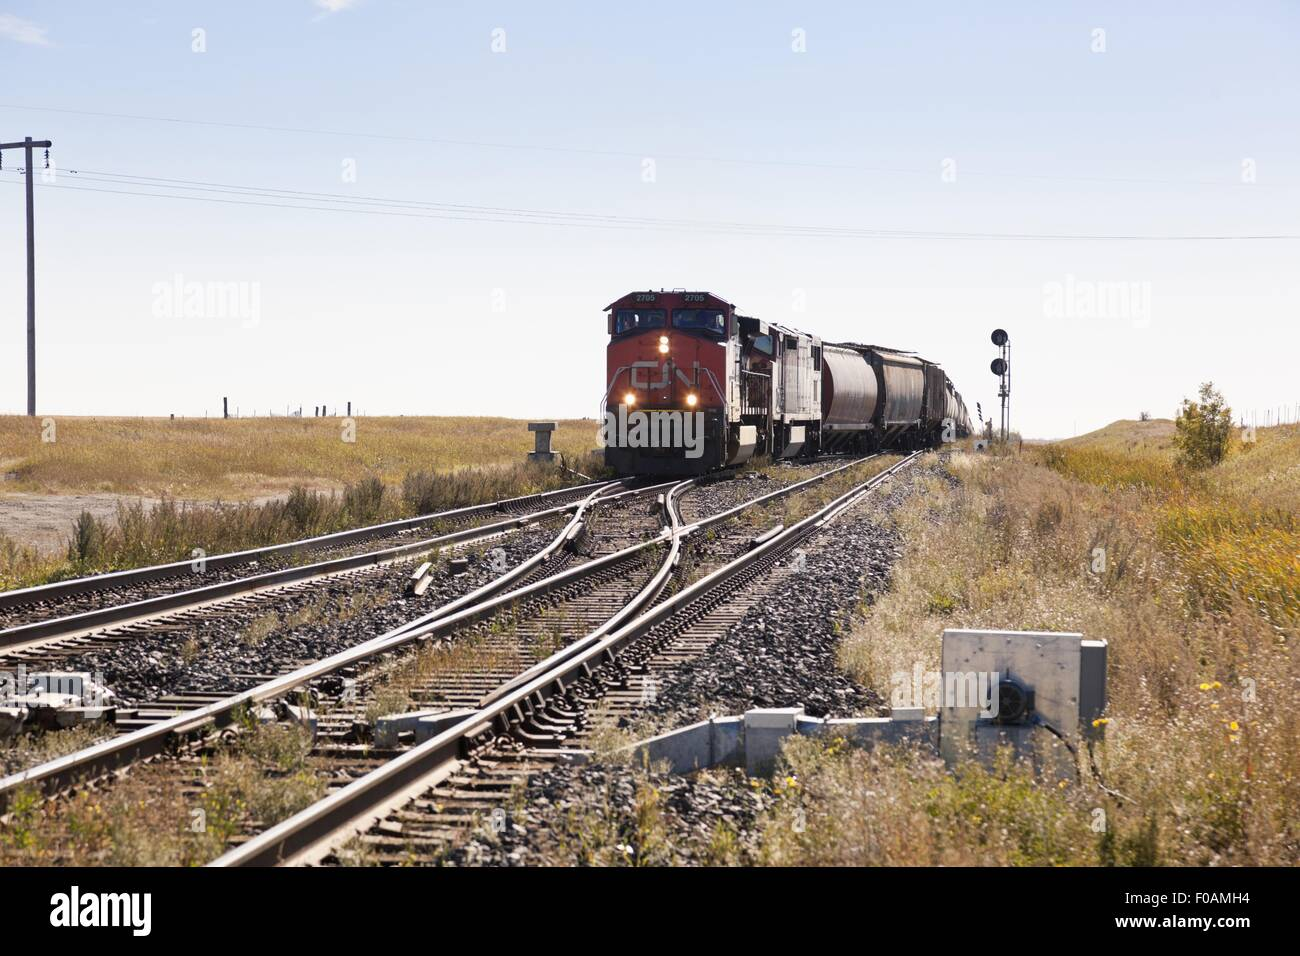 View of train and railway line in Watrous small town, Saskatchewan, Canada - Stock Image